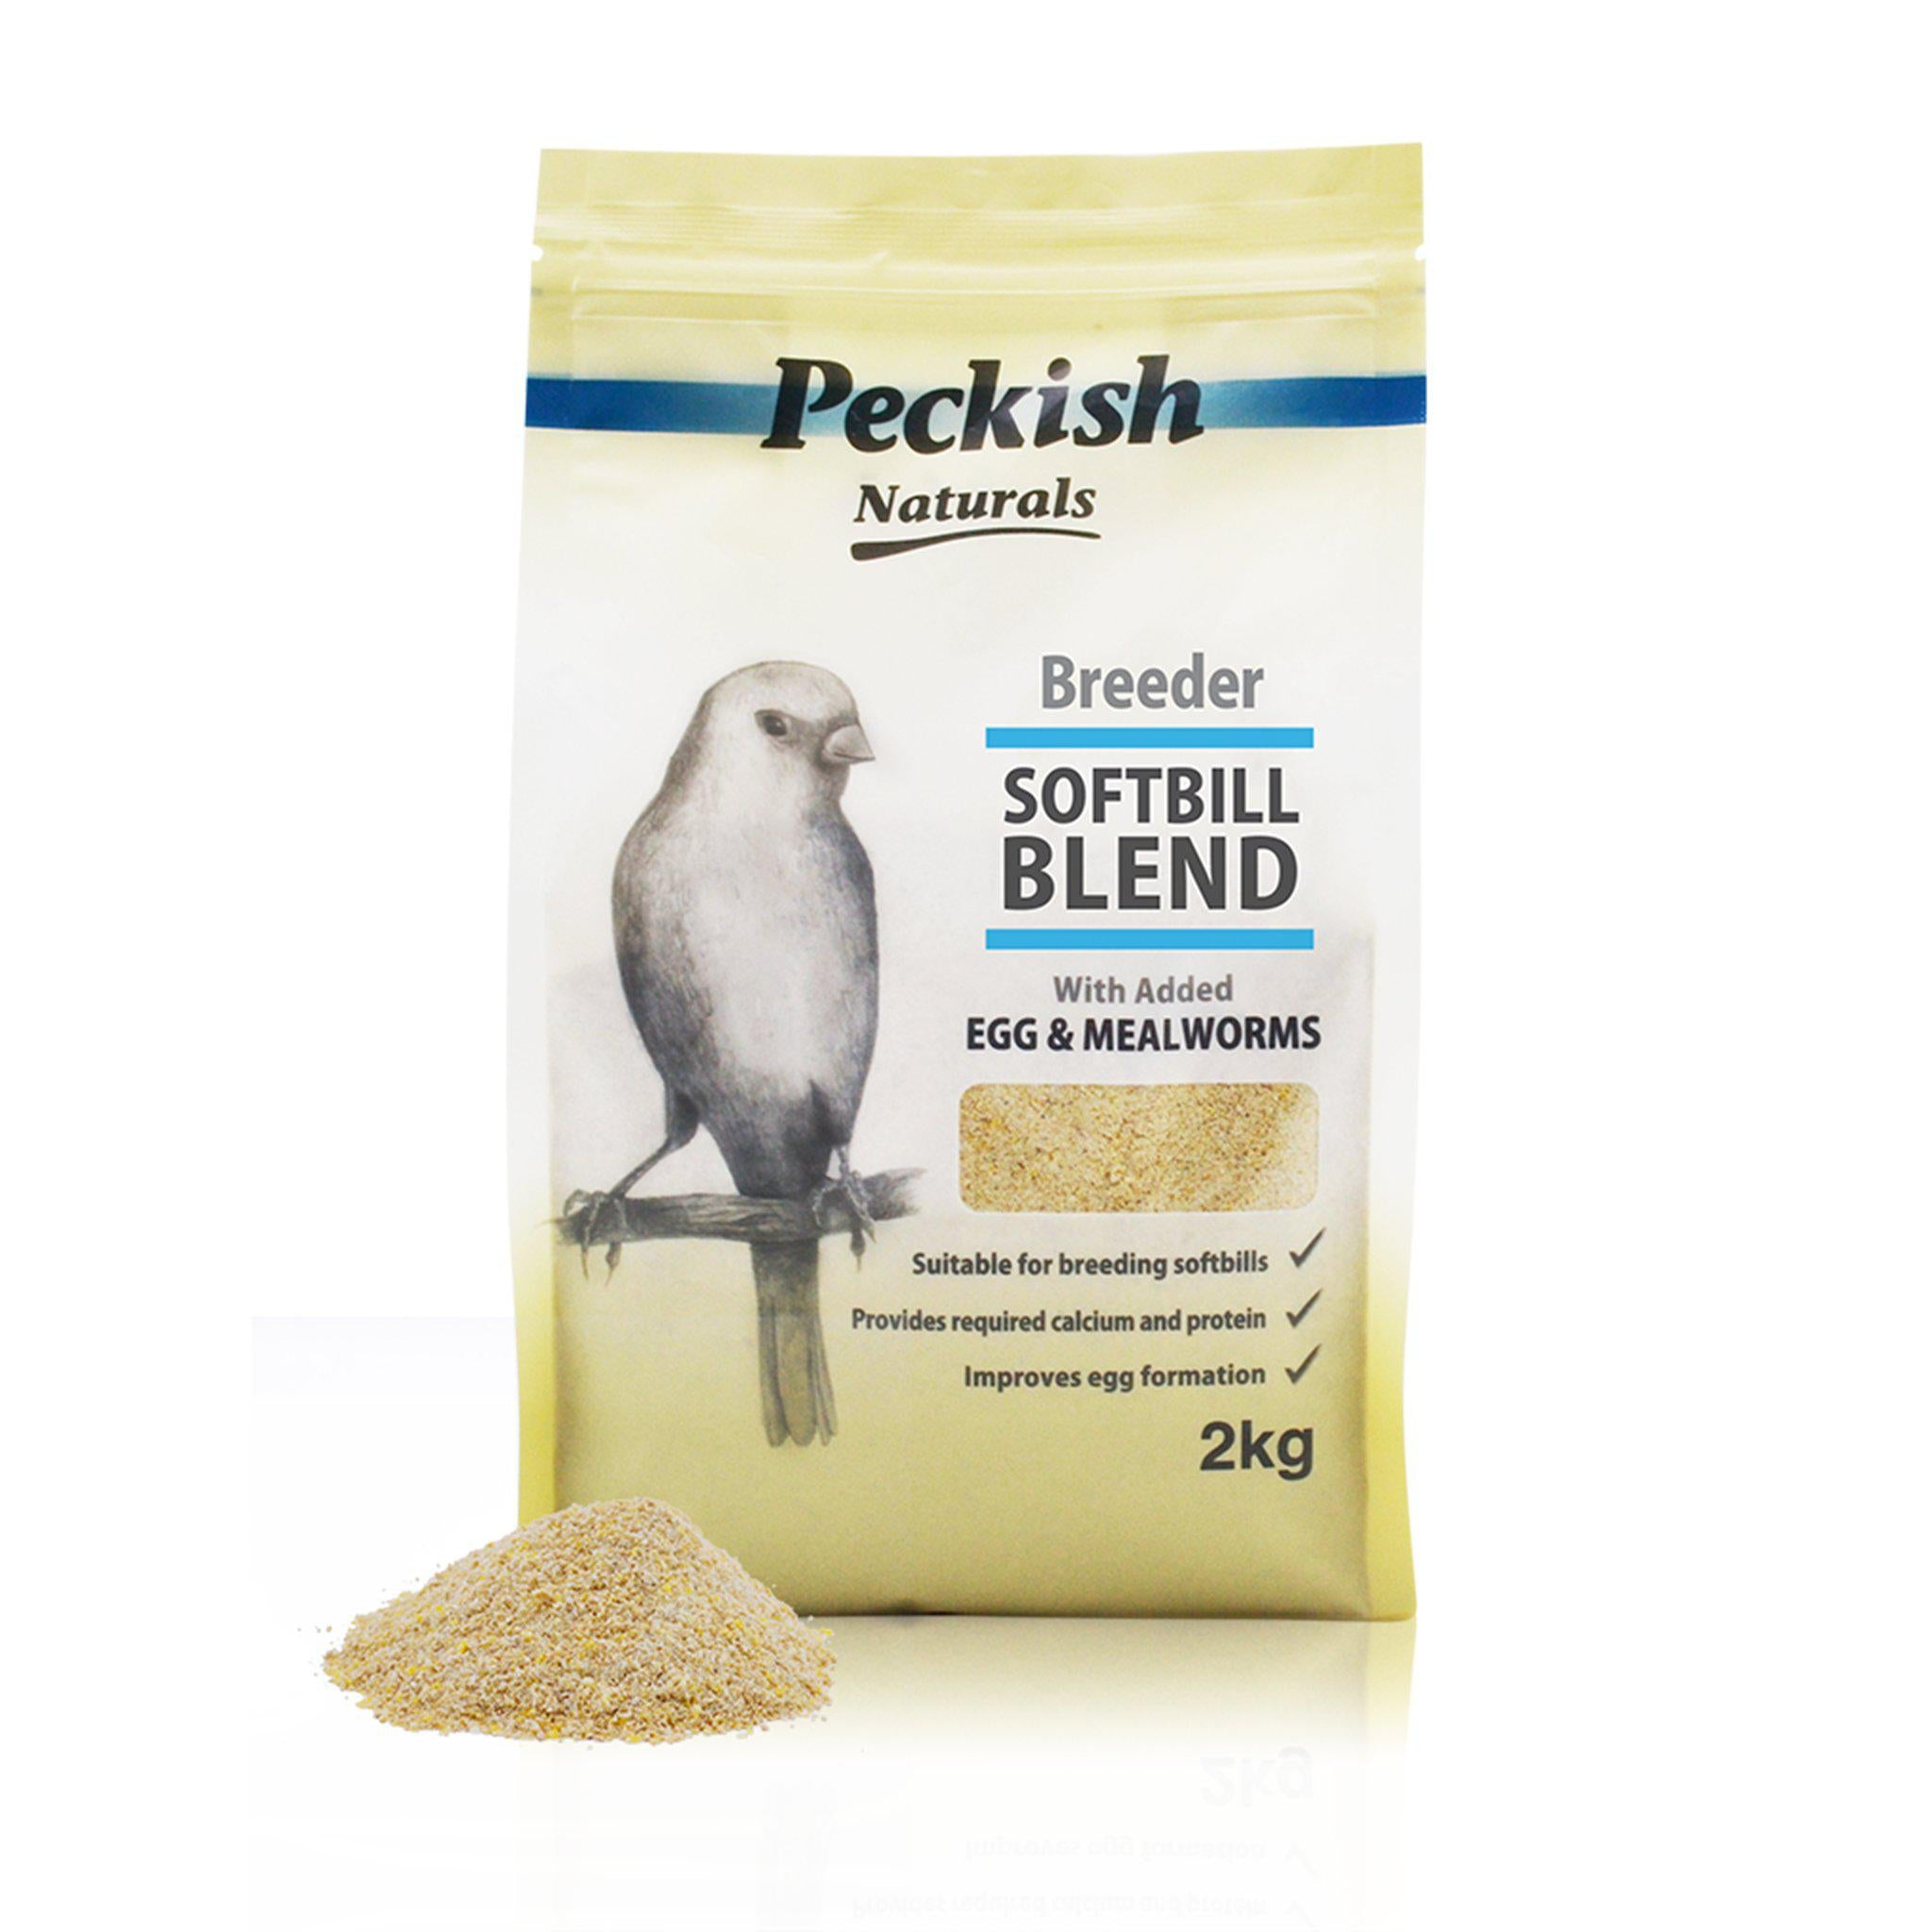 Peckish Naturals Adult Softbill Blend - Chia - comfypet